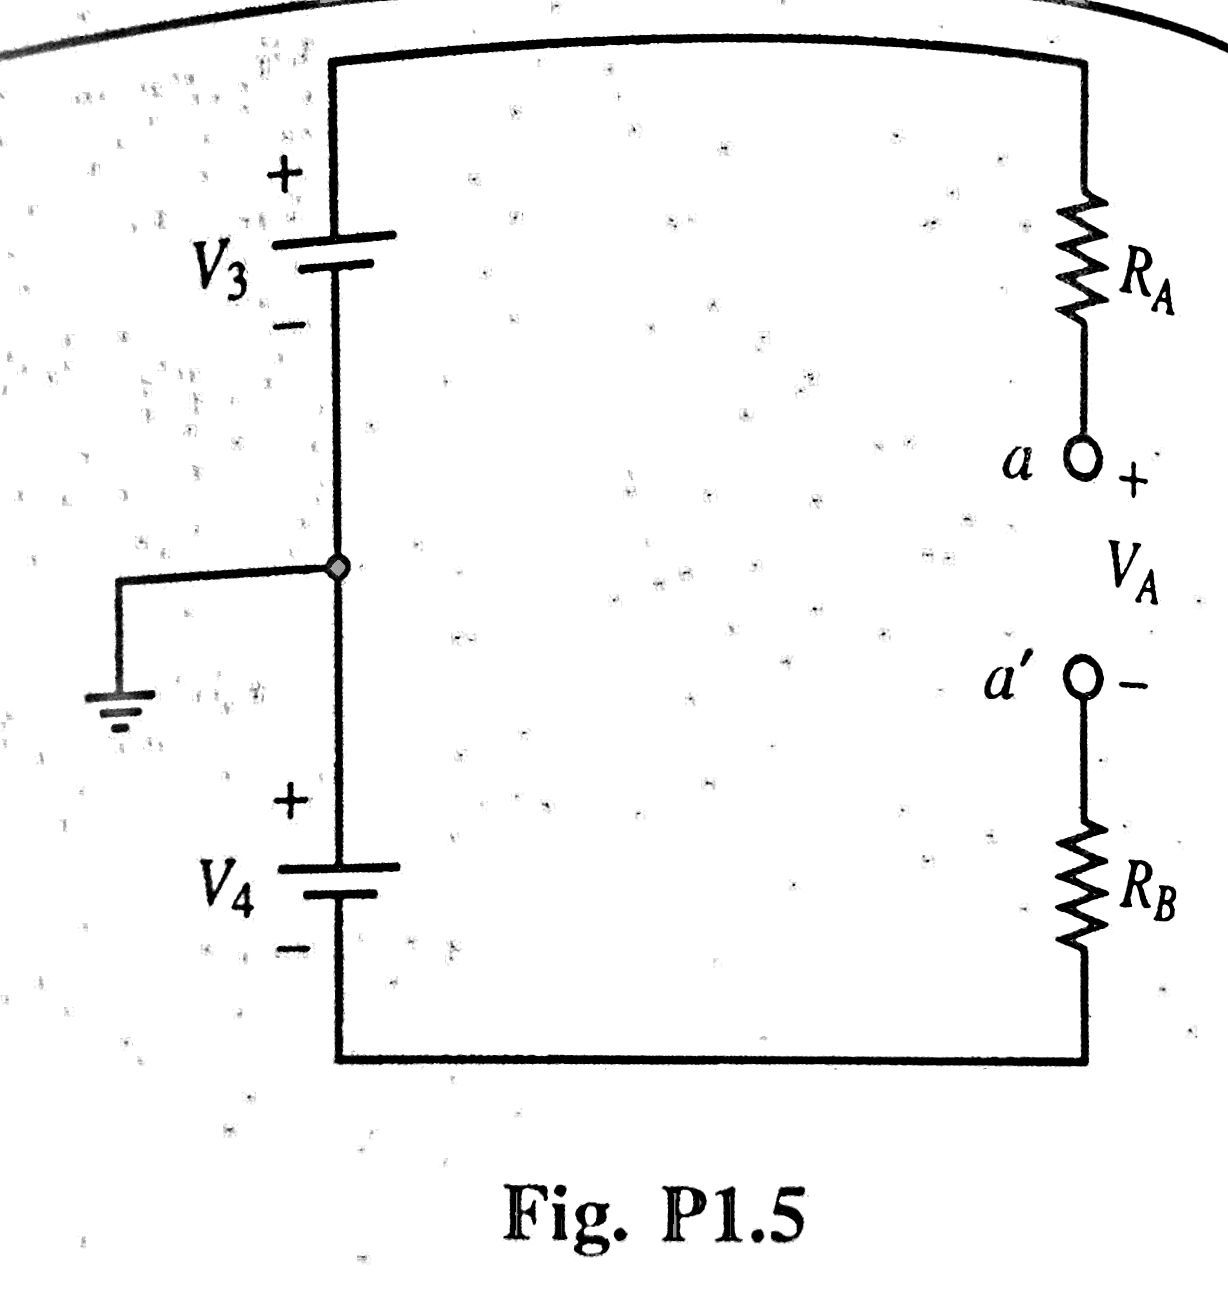 Fig. P1.5 Consider the circuit of Fig. Pl.14 with